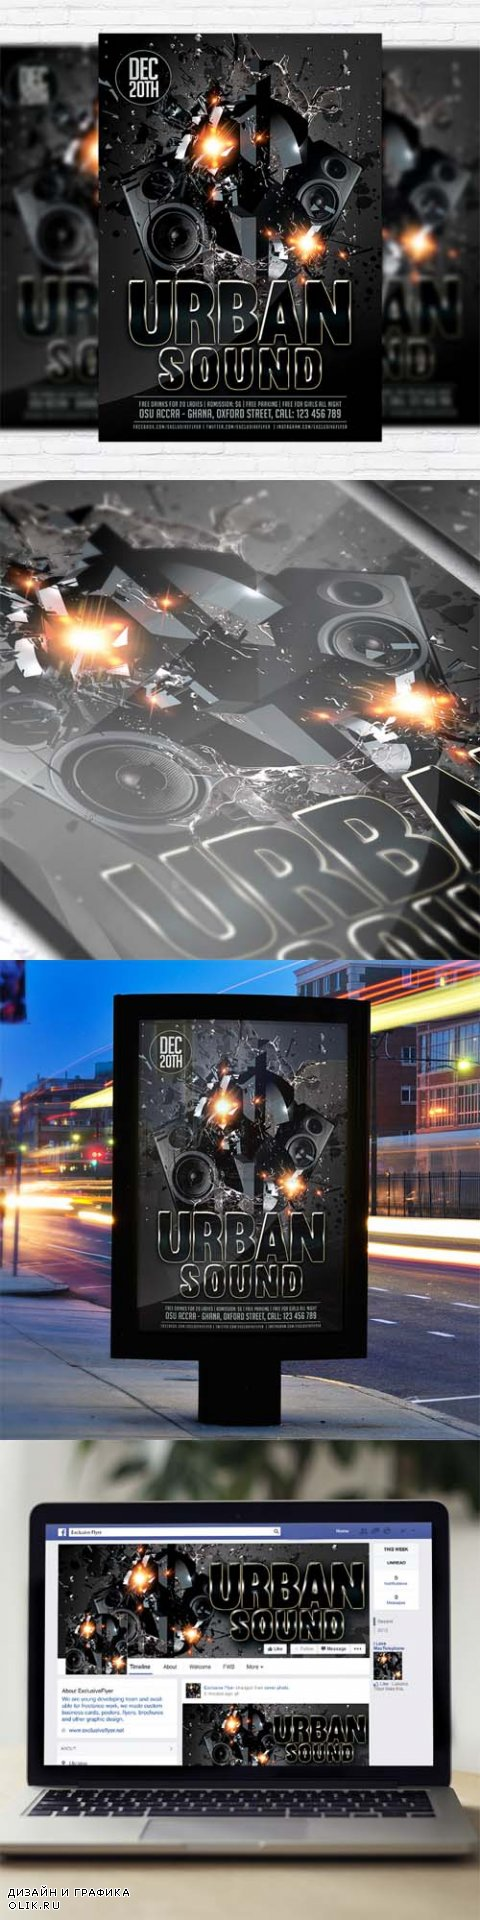 Flyer Template - Urban Sound + Facebook Cover